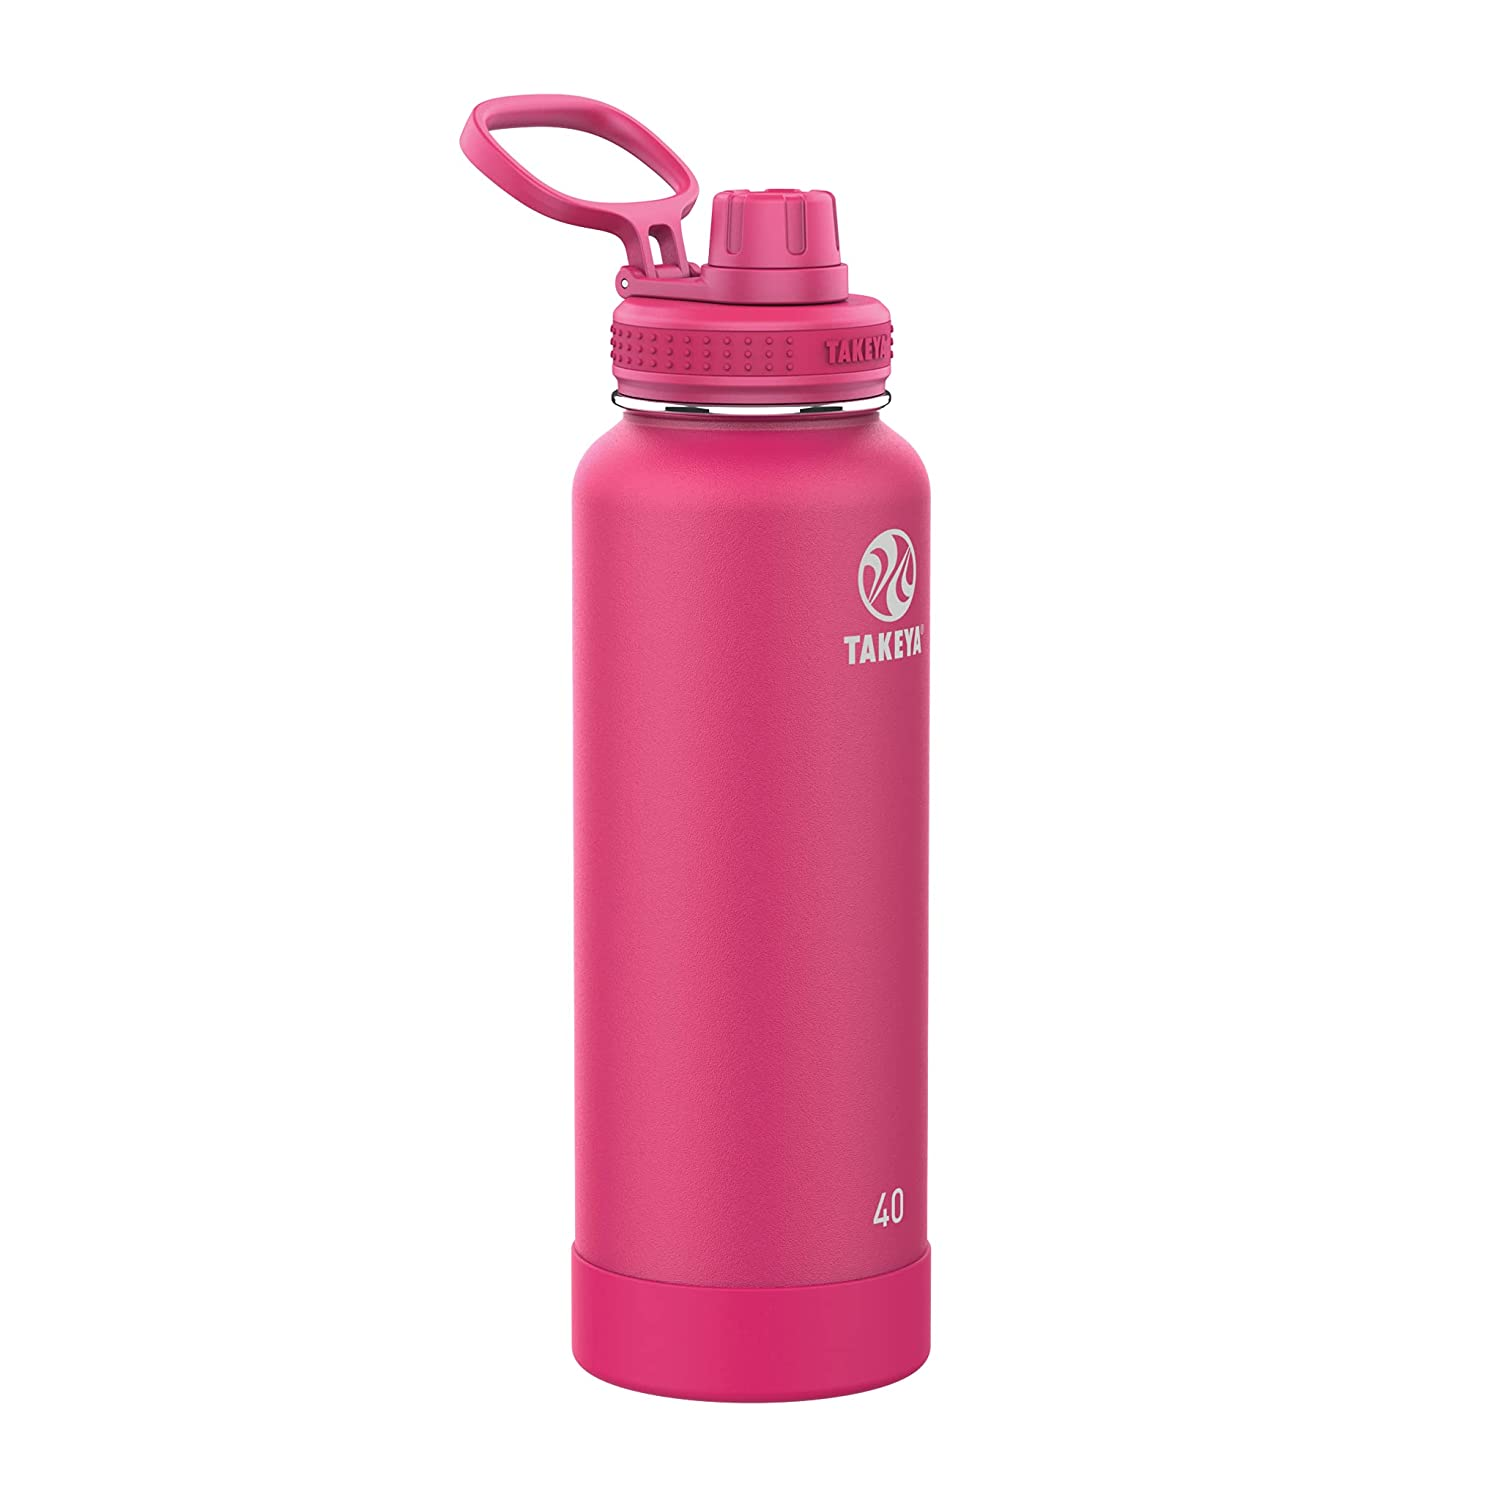 Takeya Pickleball Insulated Selling and selling Louisville-Jefferson County Mall Water Bottle with 4 Spout Sport Lid